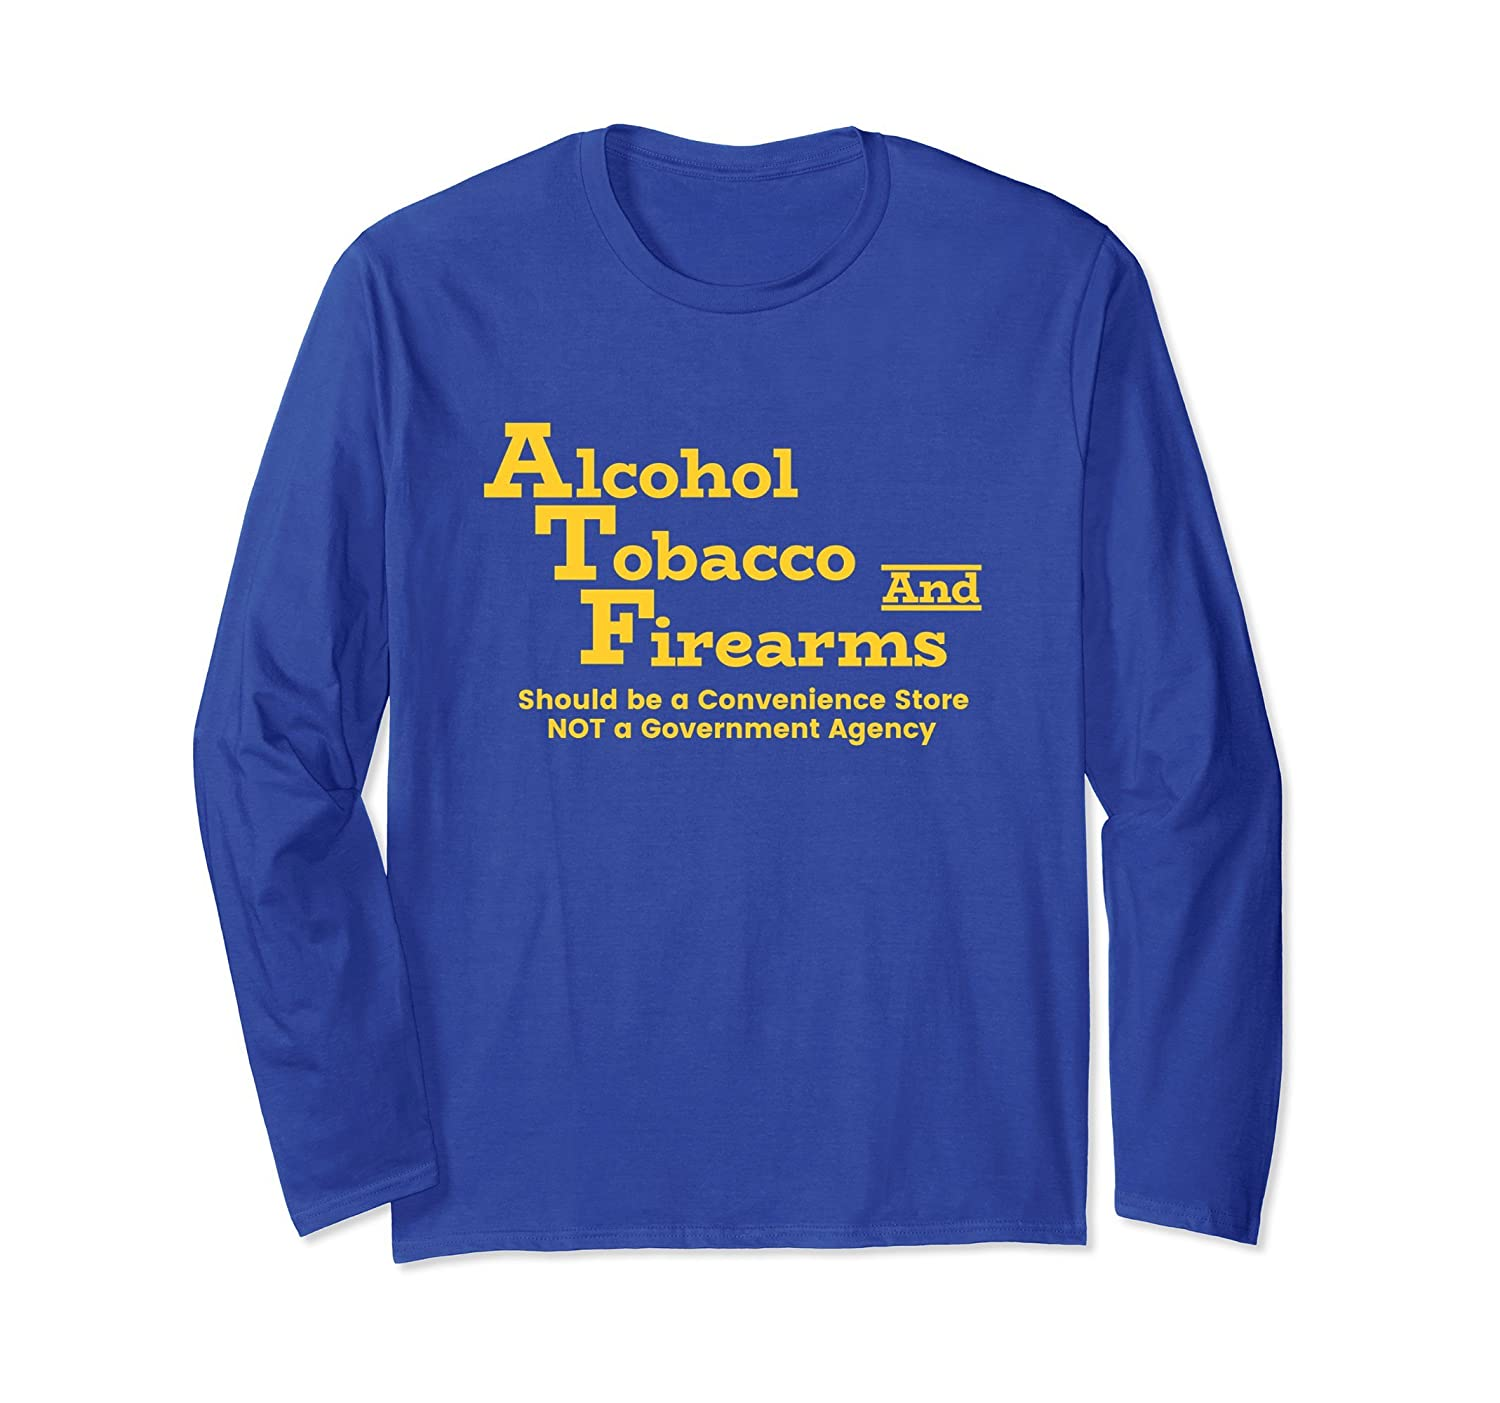 Alcohol Tobacco Firearms Convenience Store Long Sleeve Shirt-mt